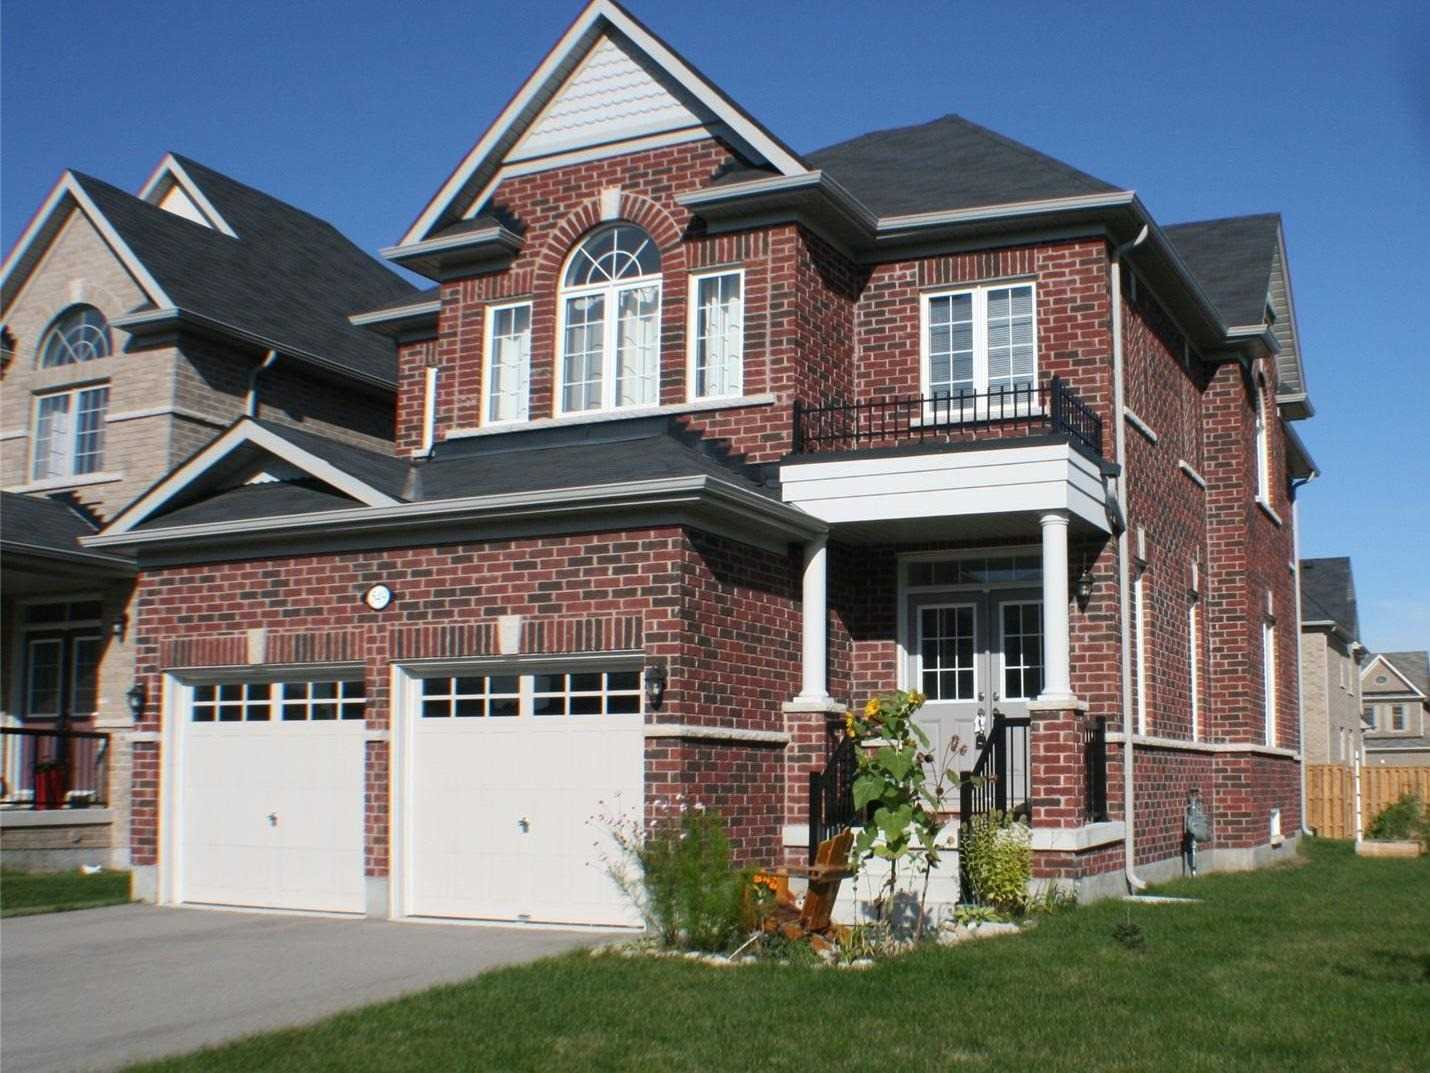 For Sale: 549 Dunlop Court, Woodstock, ON   4 Bed, 3 Bath House for $614888.00. See 15 photos!